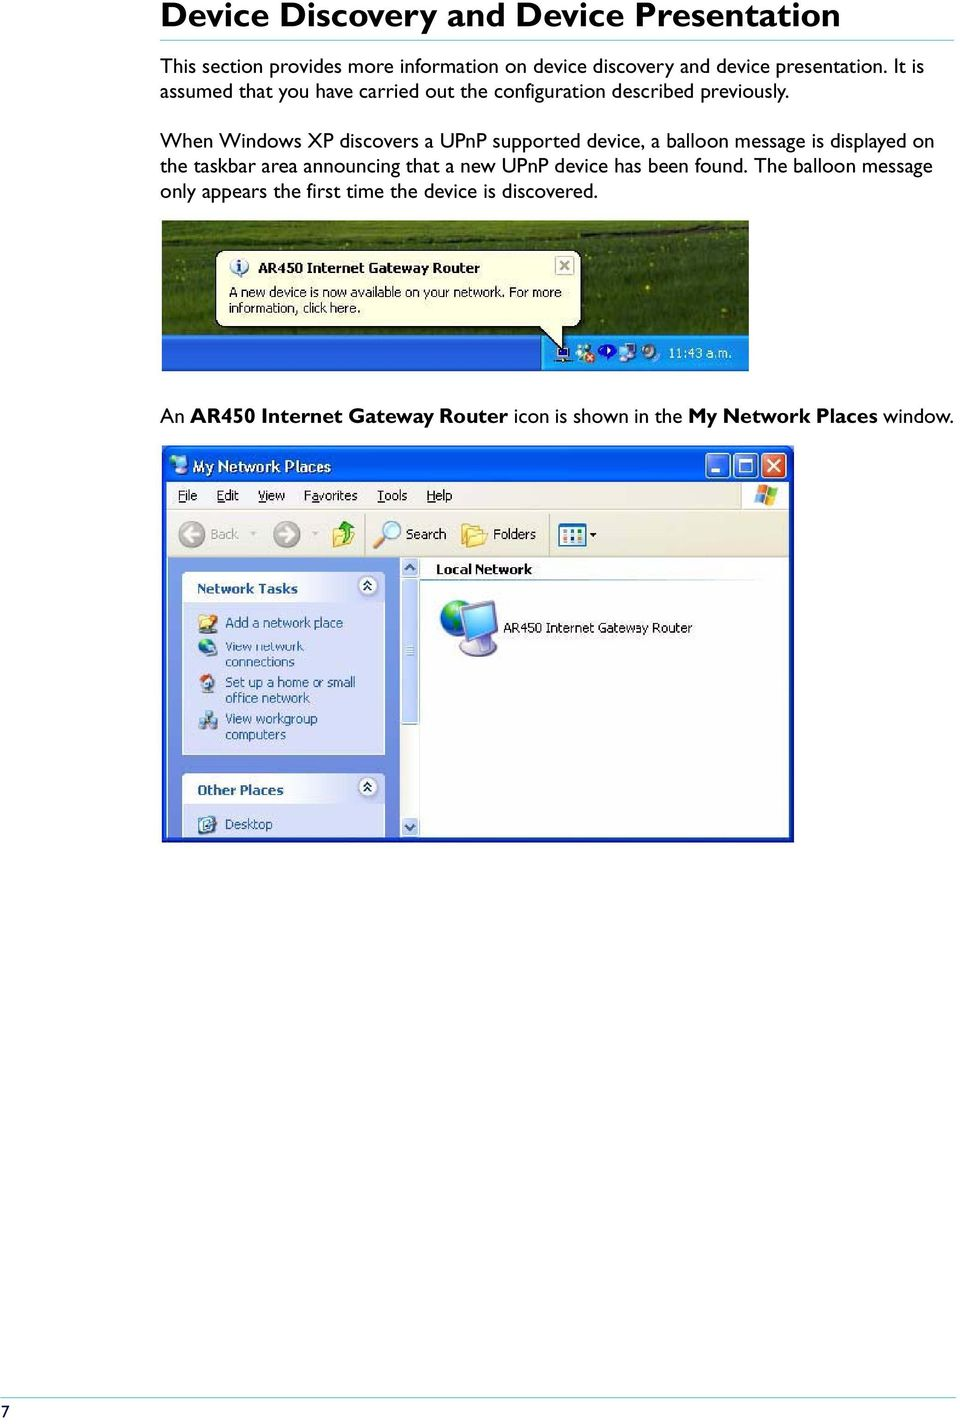 When Windows XP discovers a UPnP supported device, a balloon message is displayed on the taskbar area announcing that a new